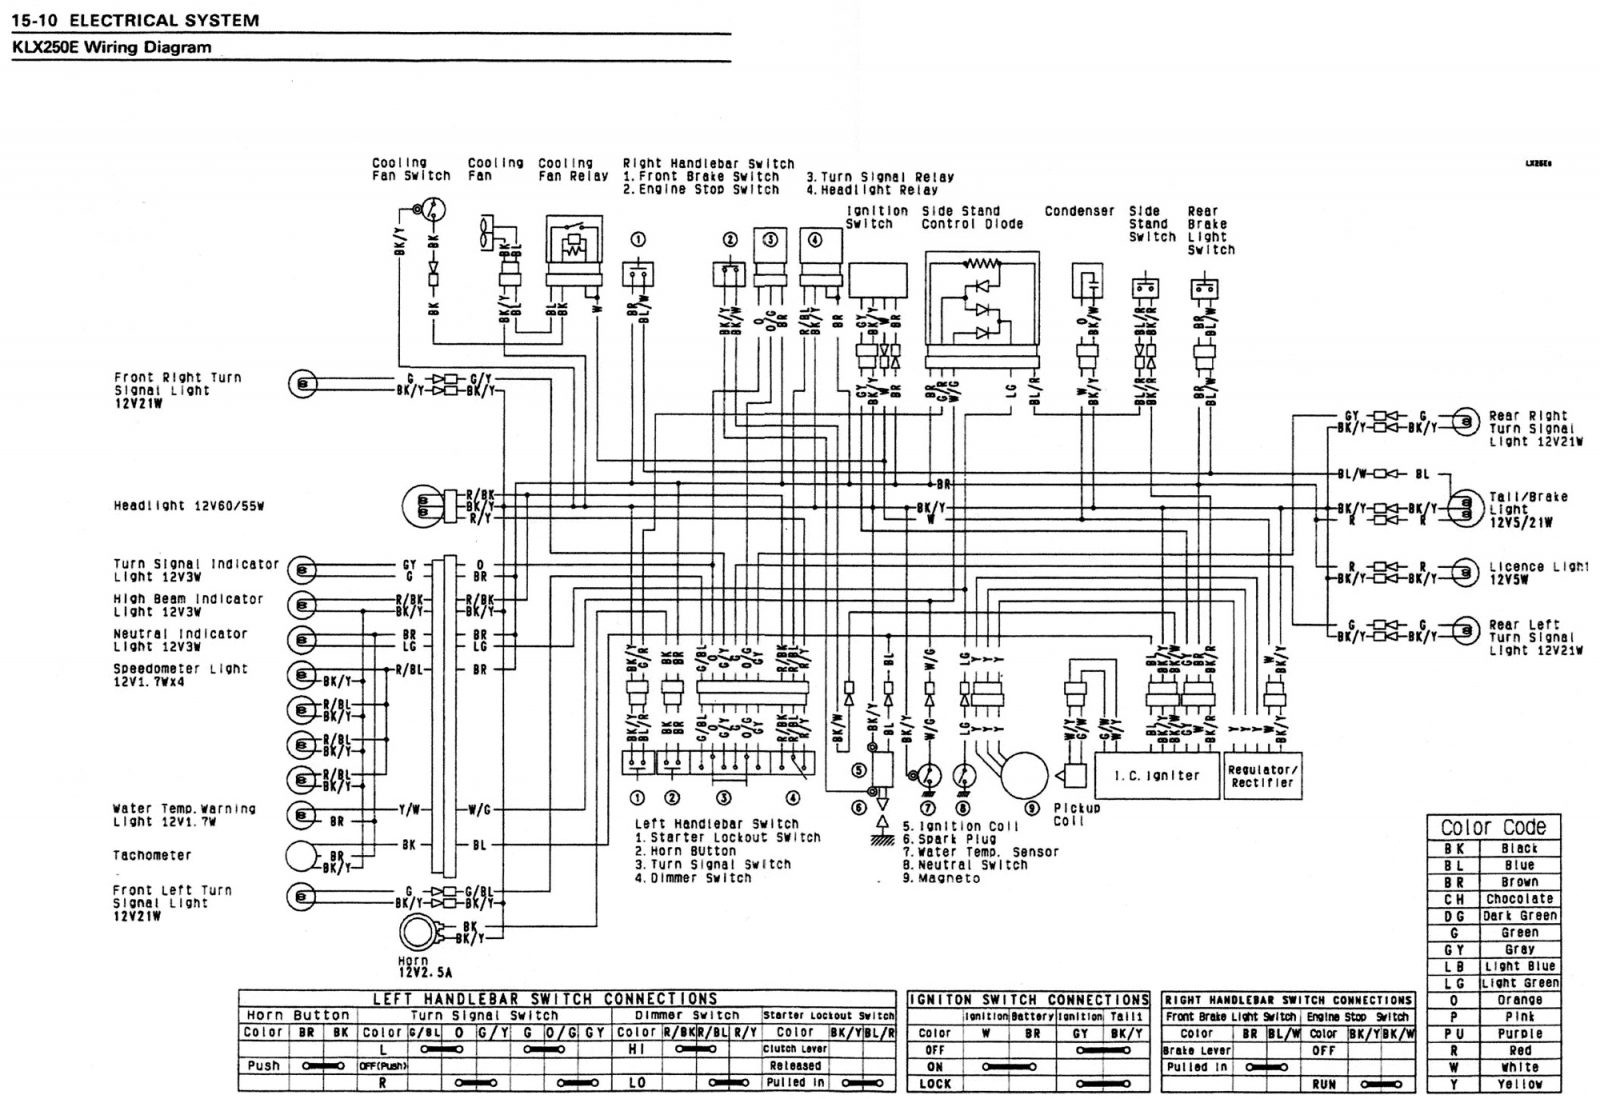 Kawasaki Bayou Wiring Diagram For Download Tearing Schematic And Electrical 250 Tutorial Diagnoses Physical Connections